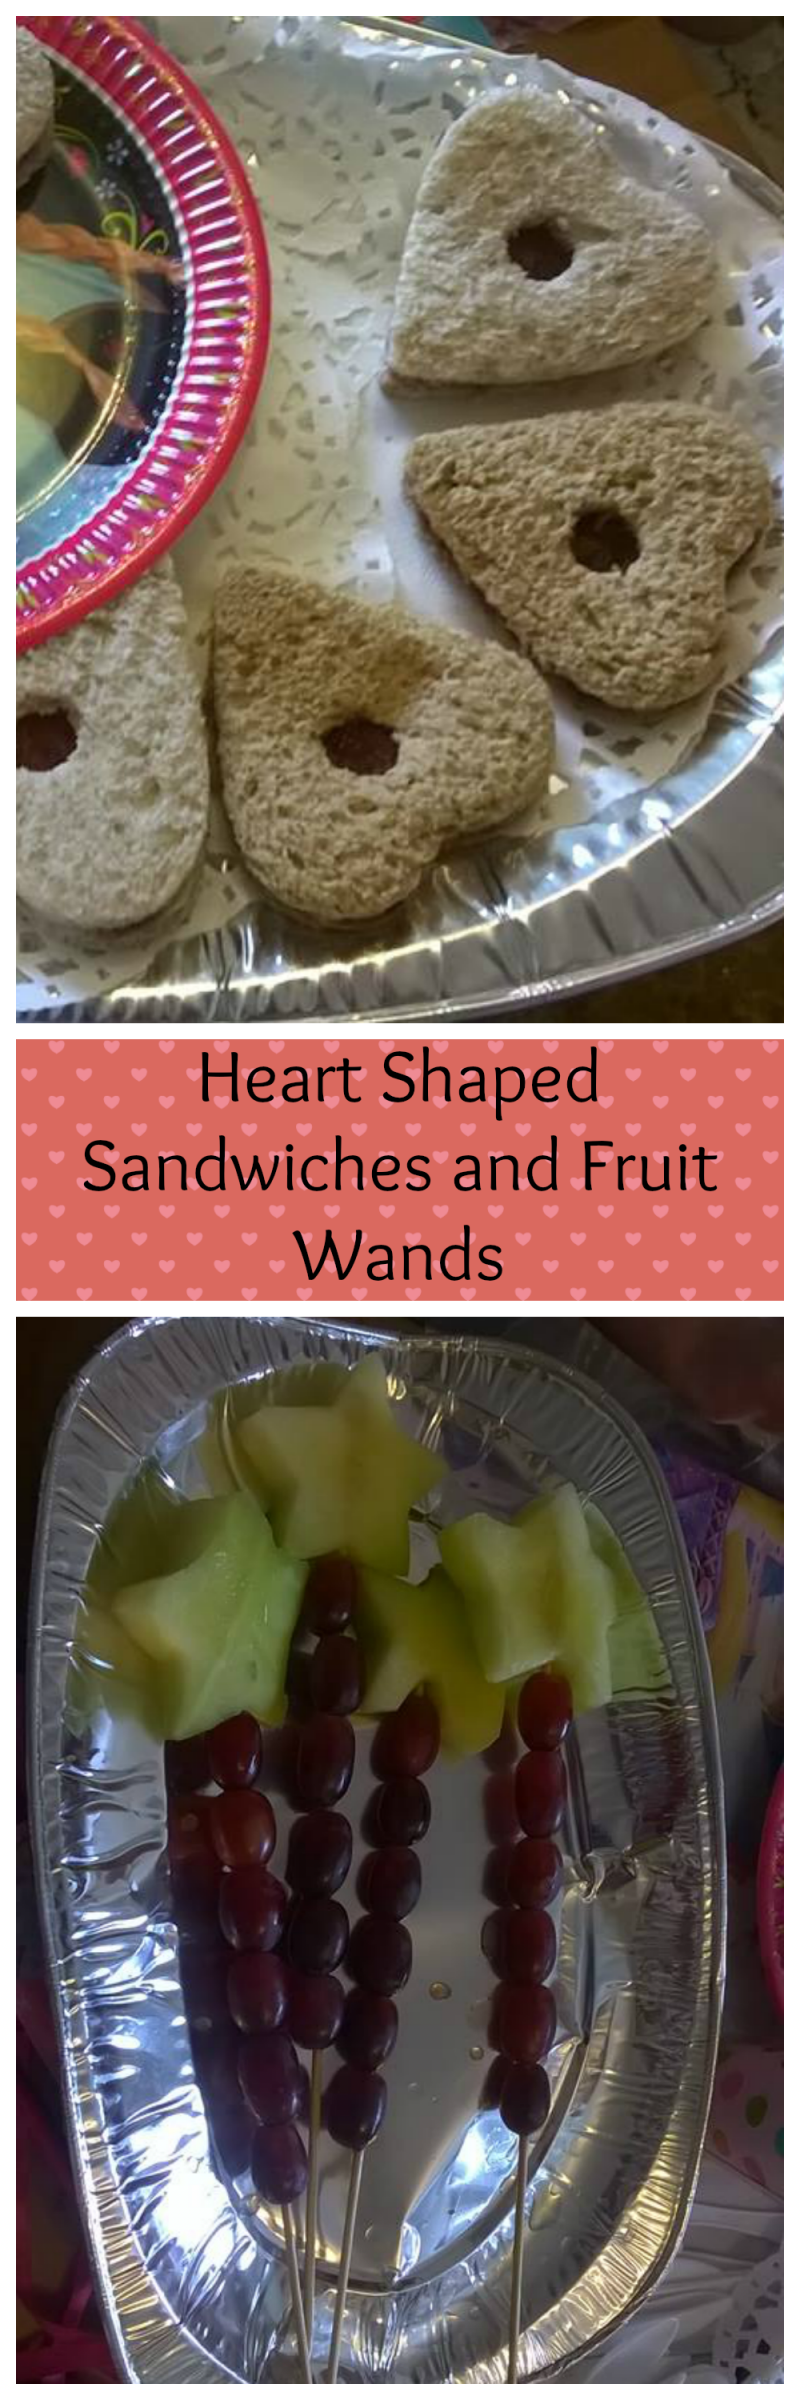 heart-shaped-sandwiches-and-fruit-wands